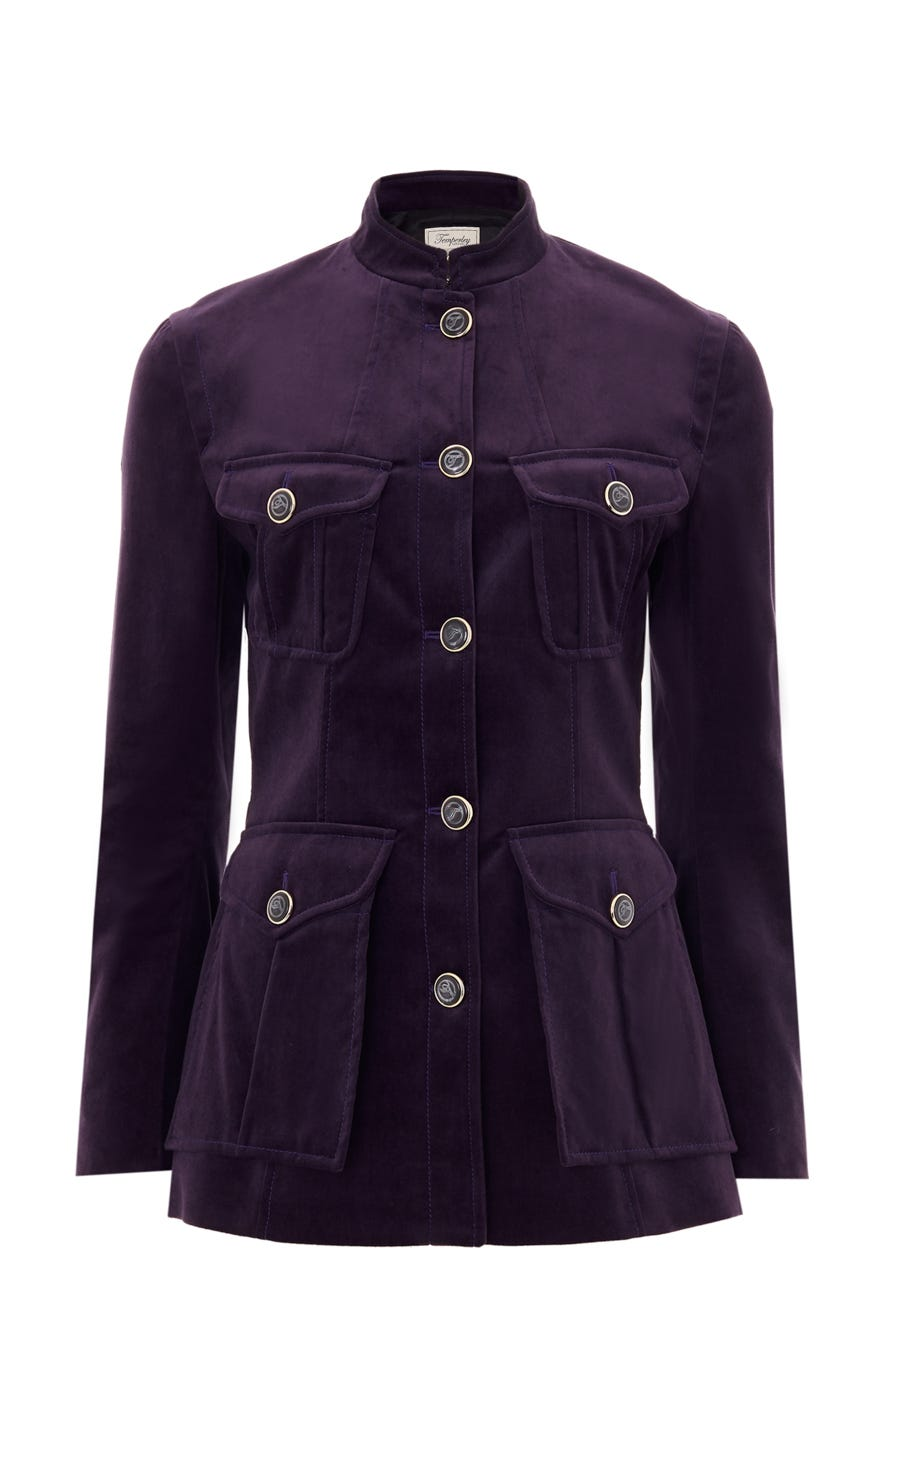 Esmeralda Tailored Jacket